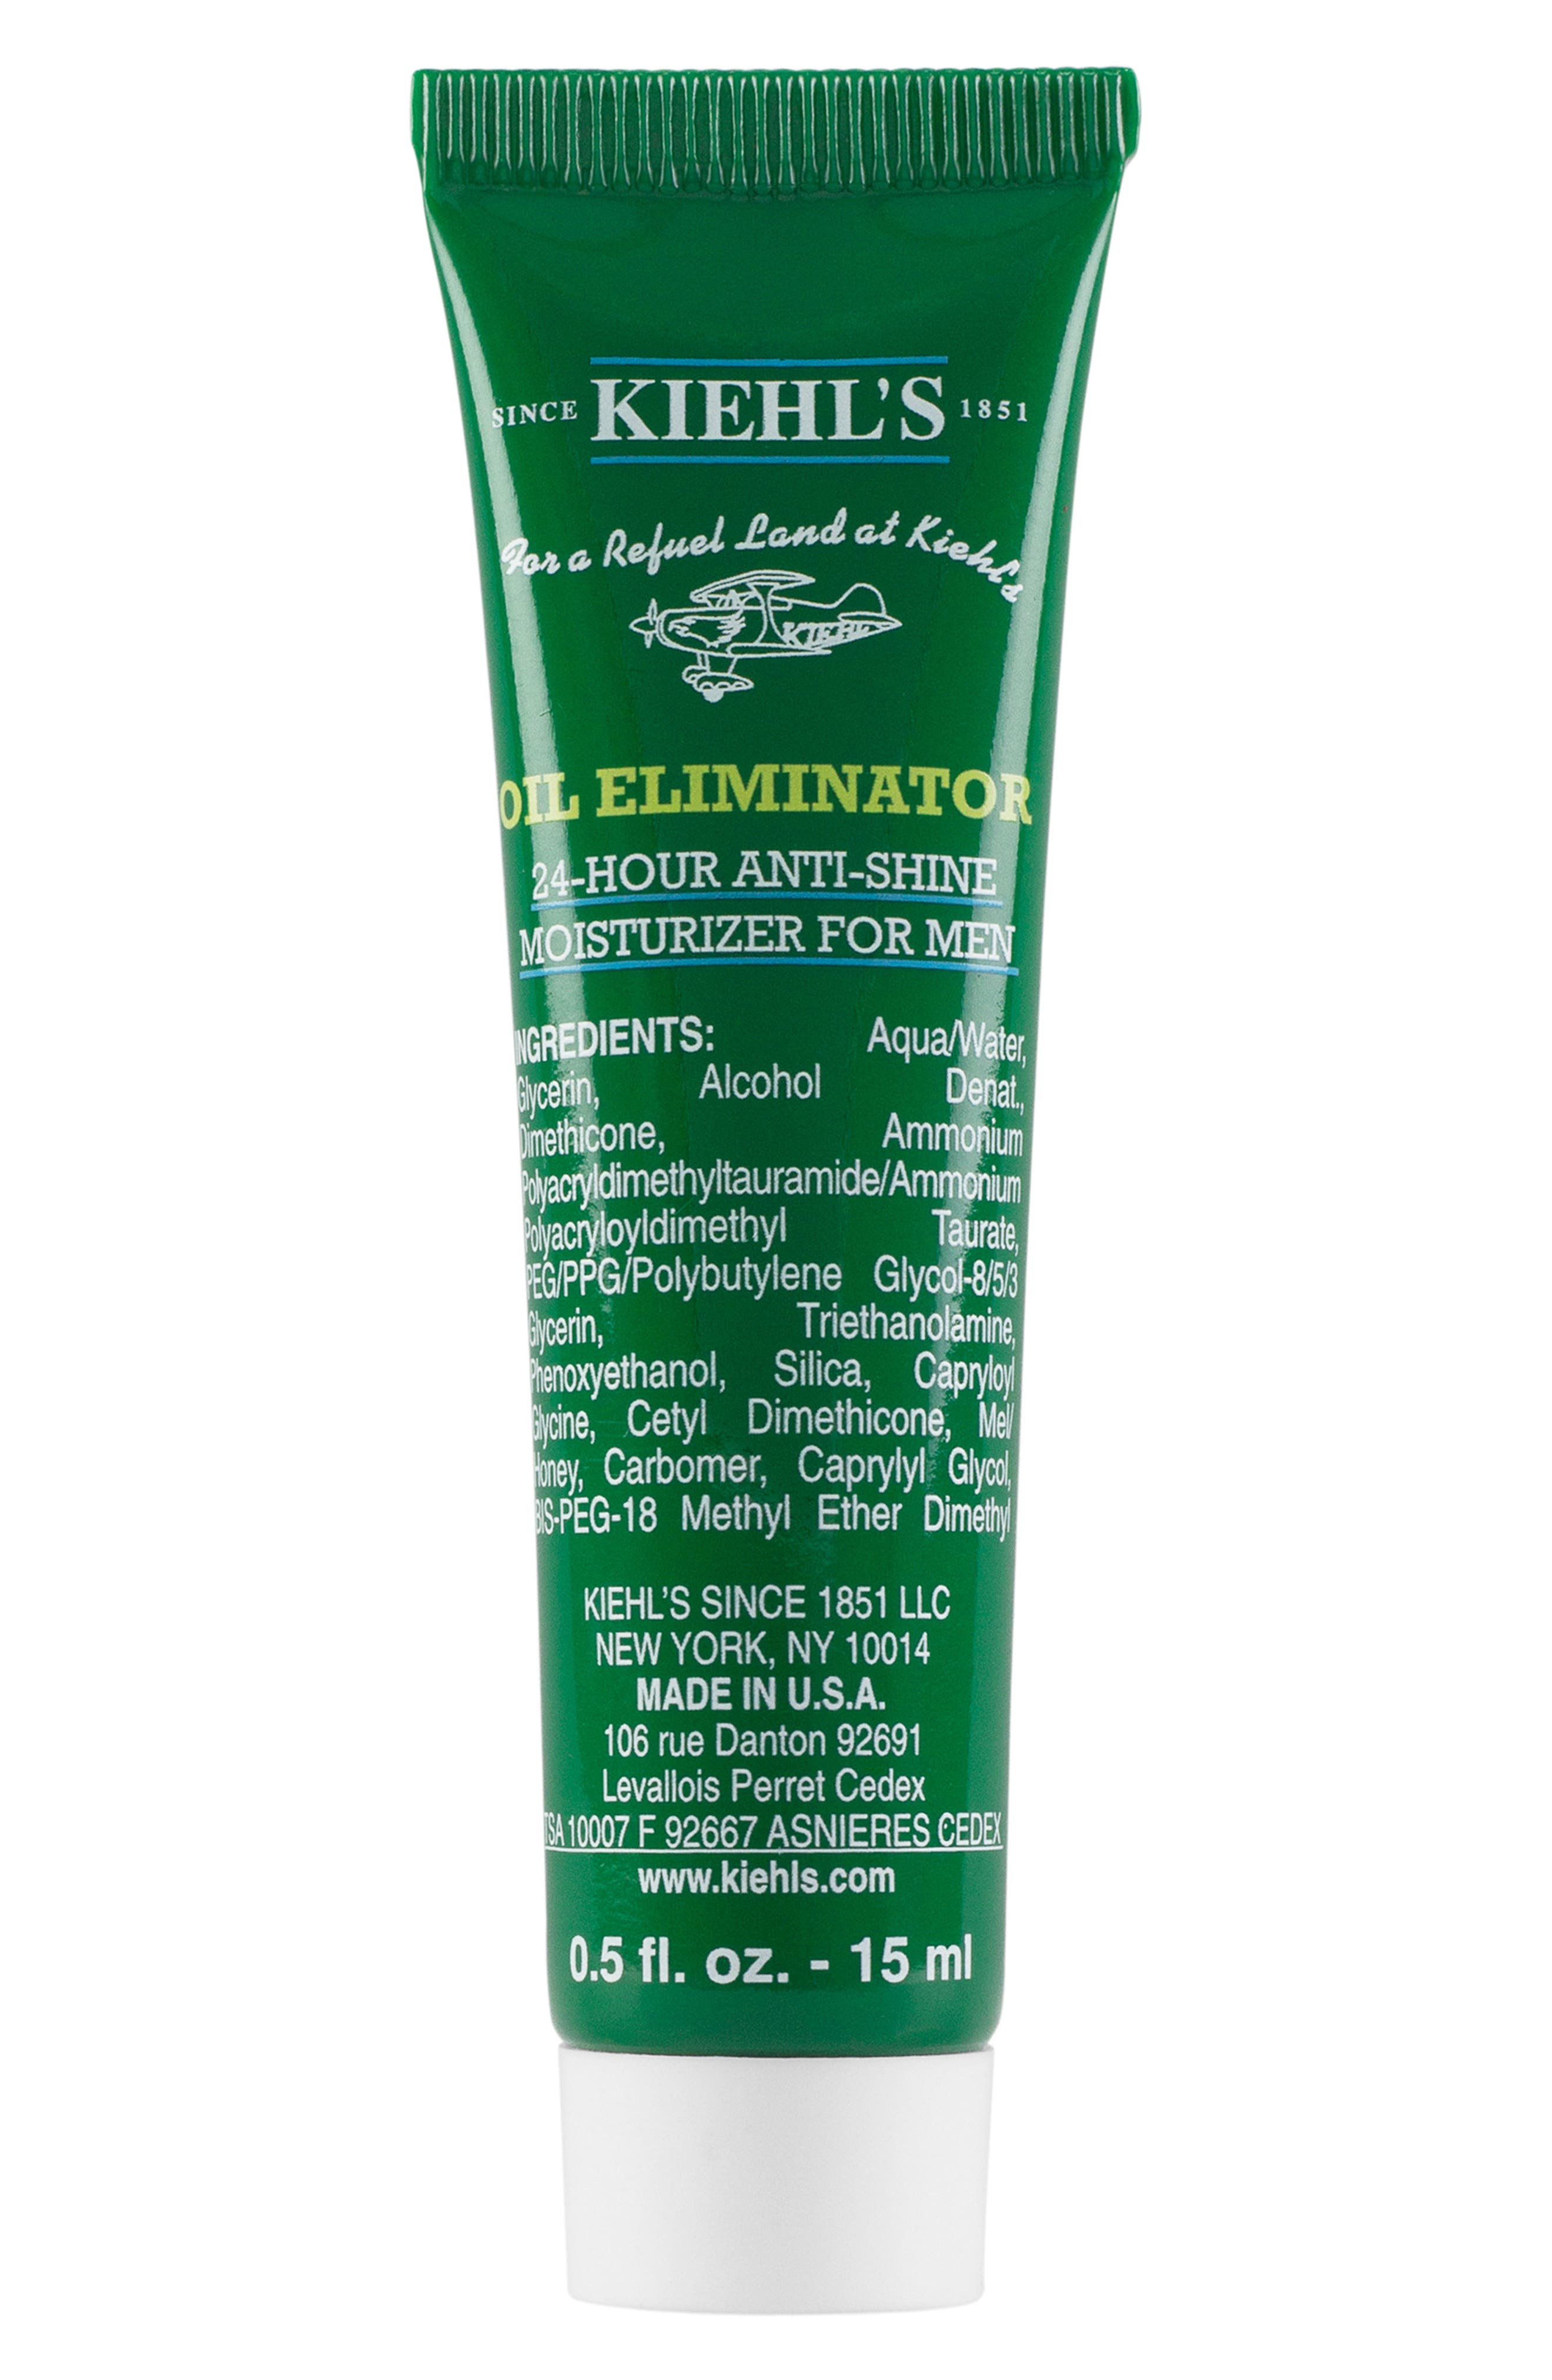 'Oil Eliminator' 24-Hour Anti-Shine Moisturizer for Men,                             Alternate thumbnail 4, color,                             NO COLOR